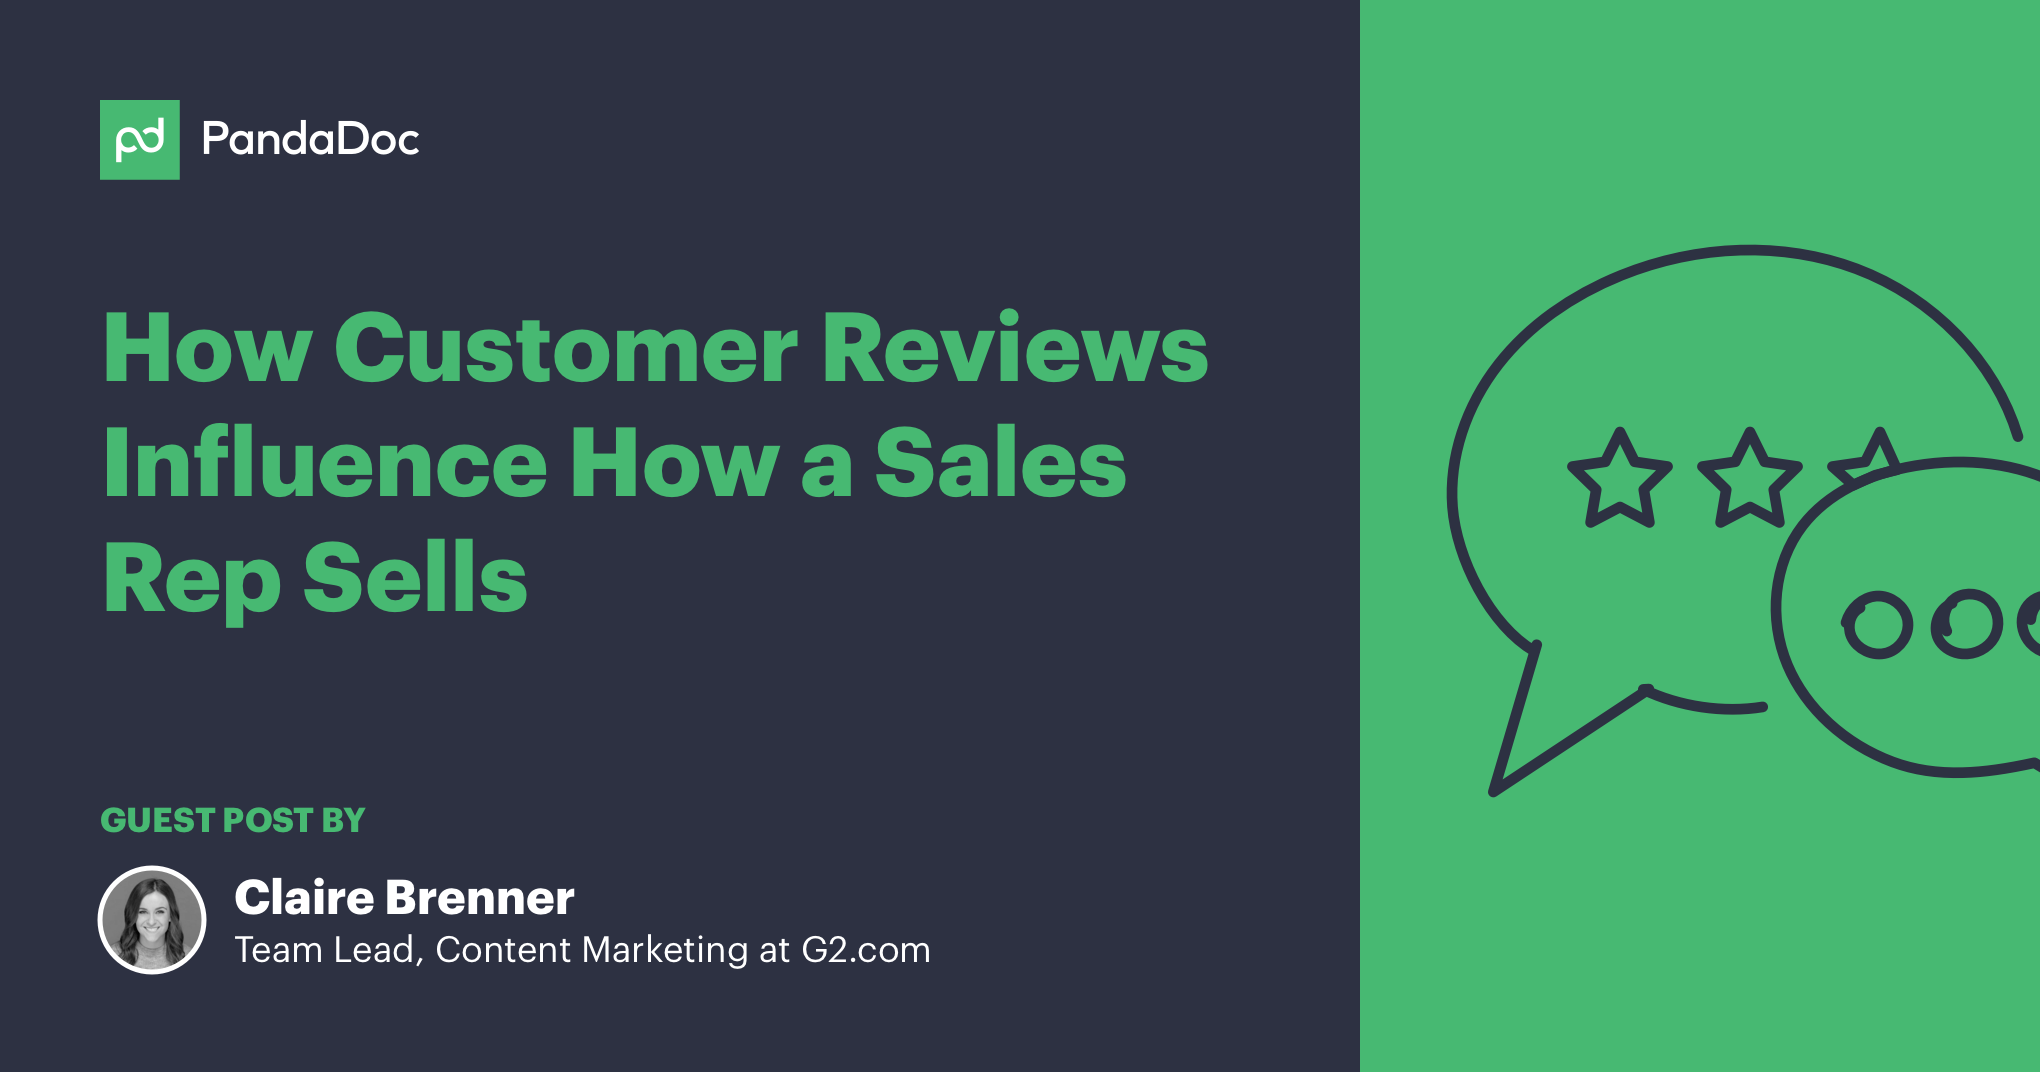 How customer reviews influence how a sales rep sells